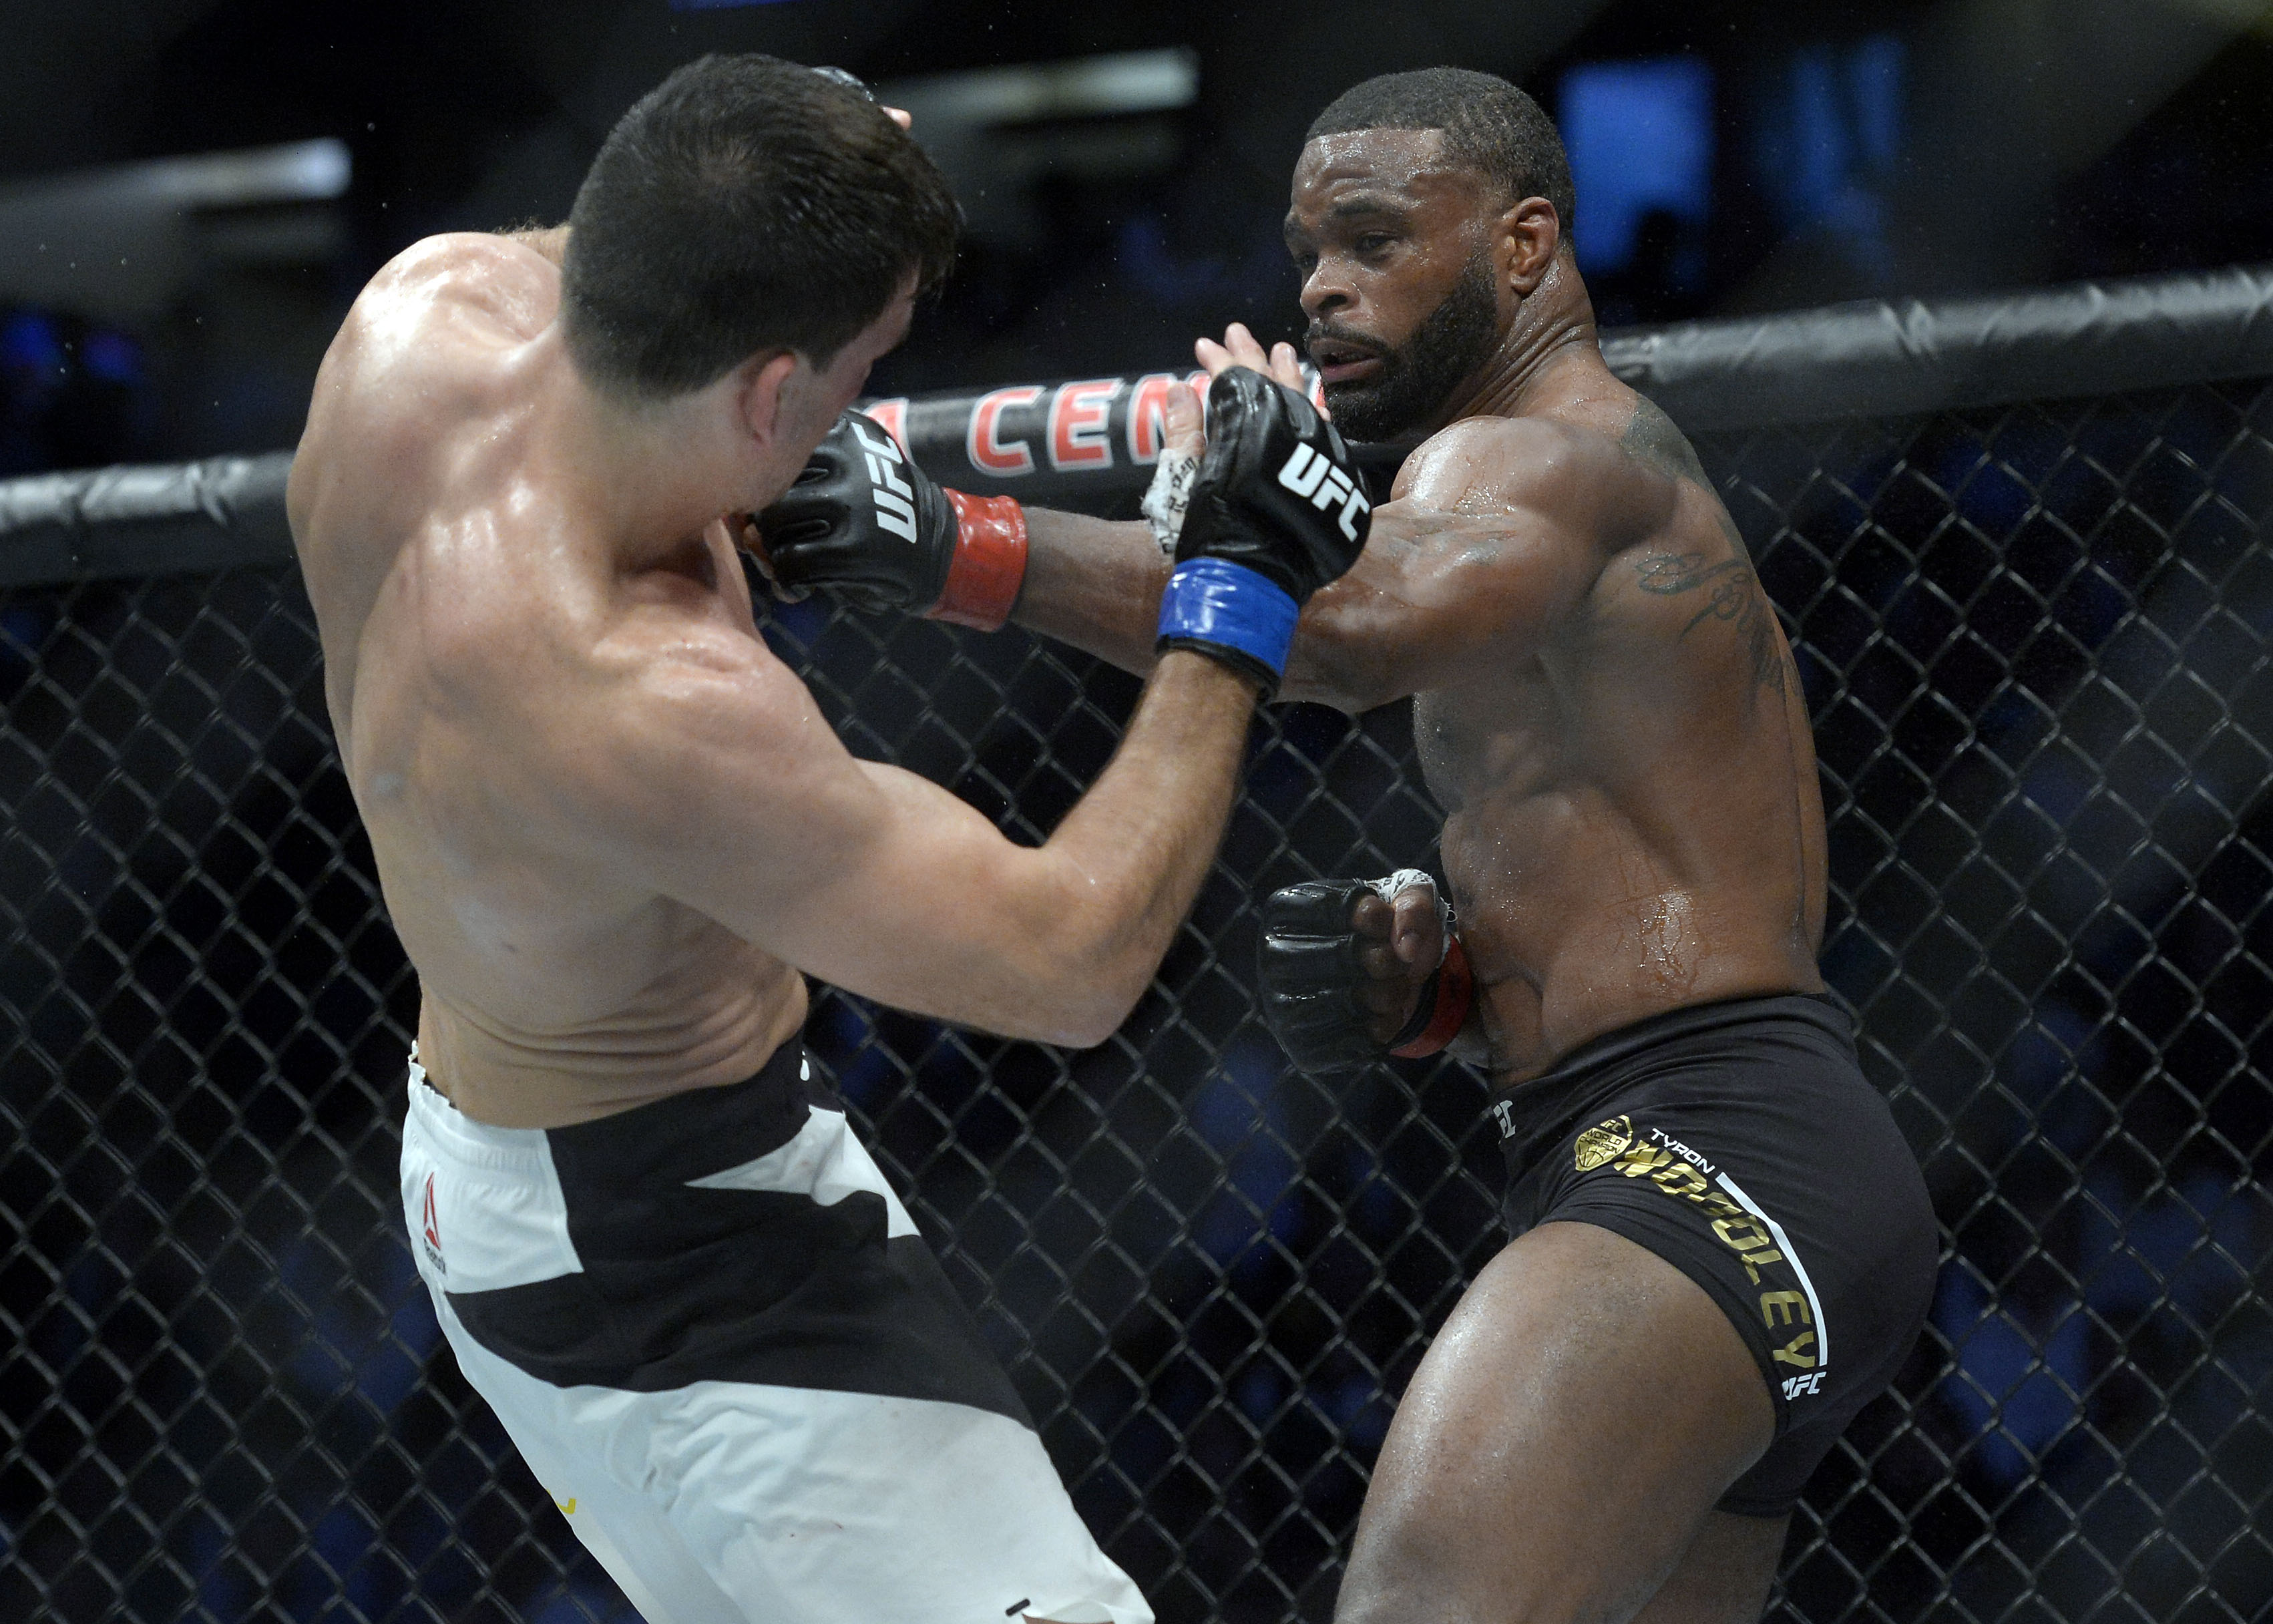 281d11e49 Tyron Woodley (right) moves in with a hit against Demian Maia (left) during  UFC 214 on July 29